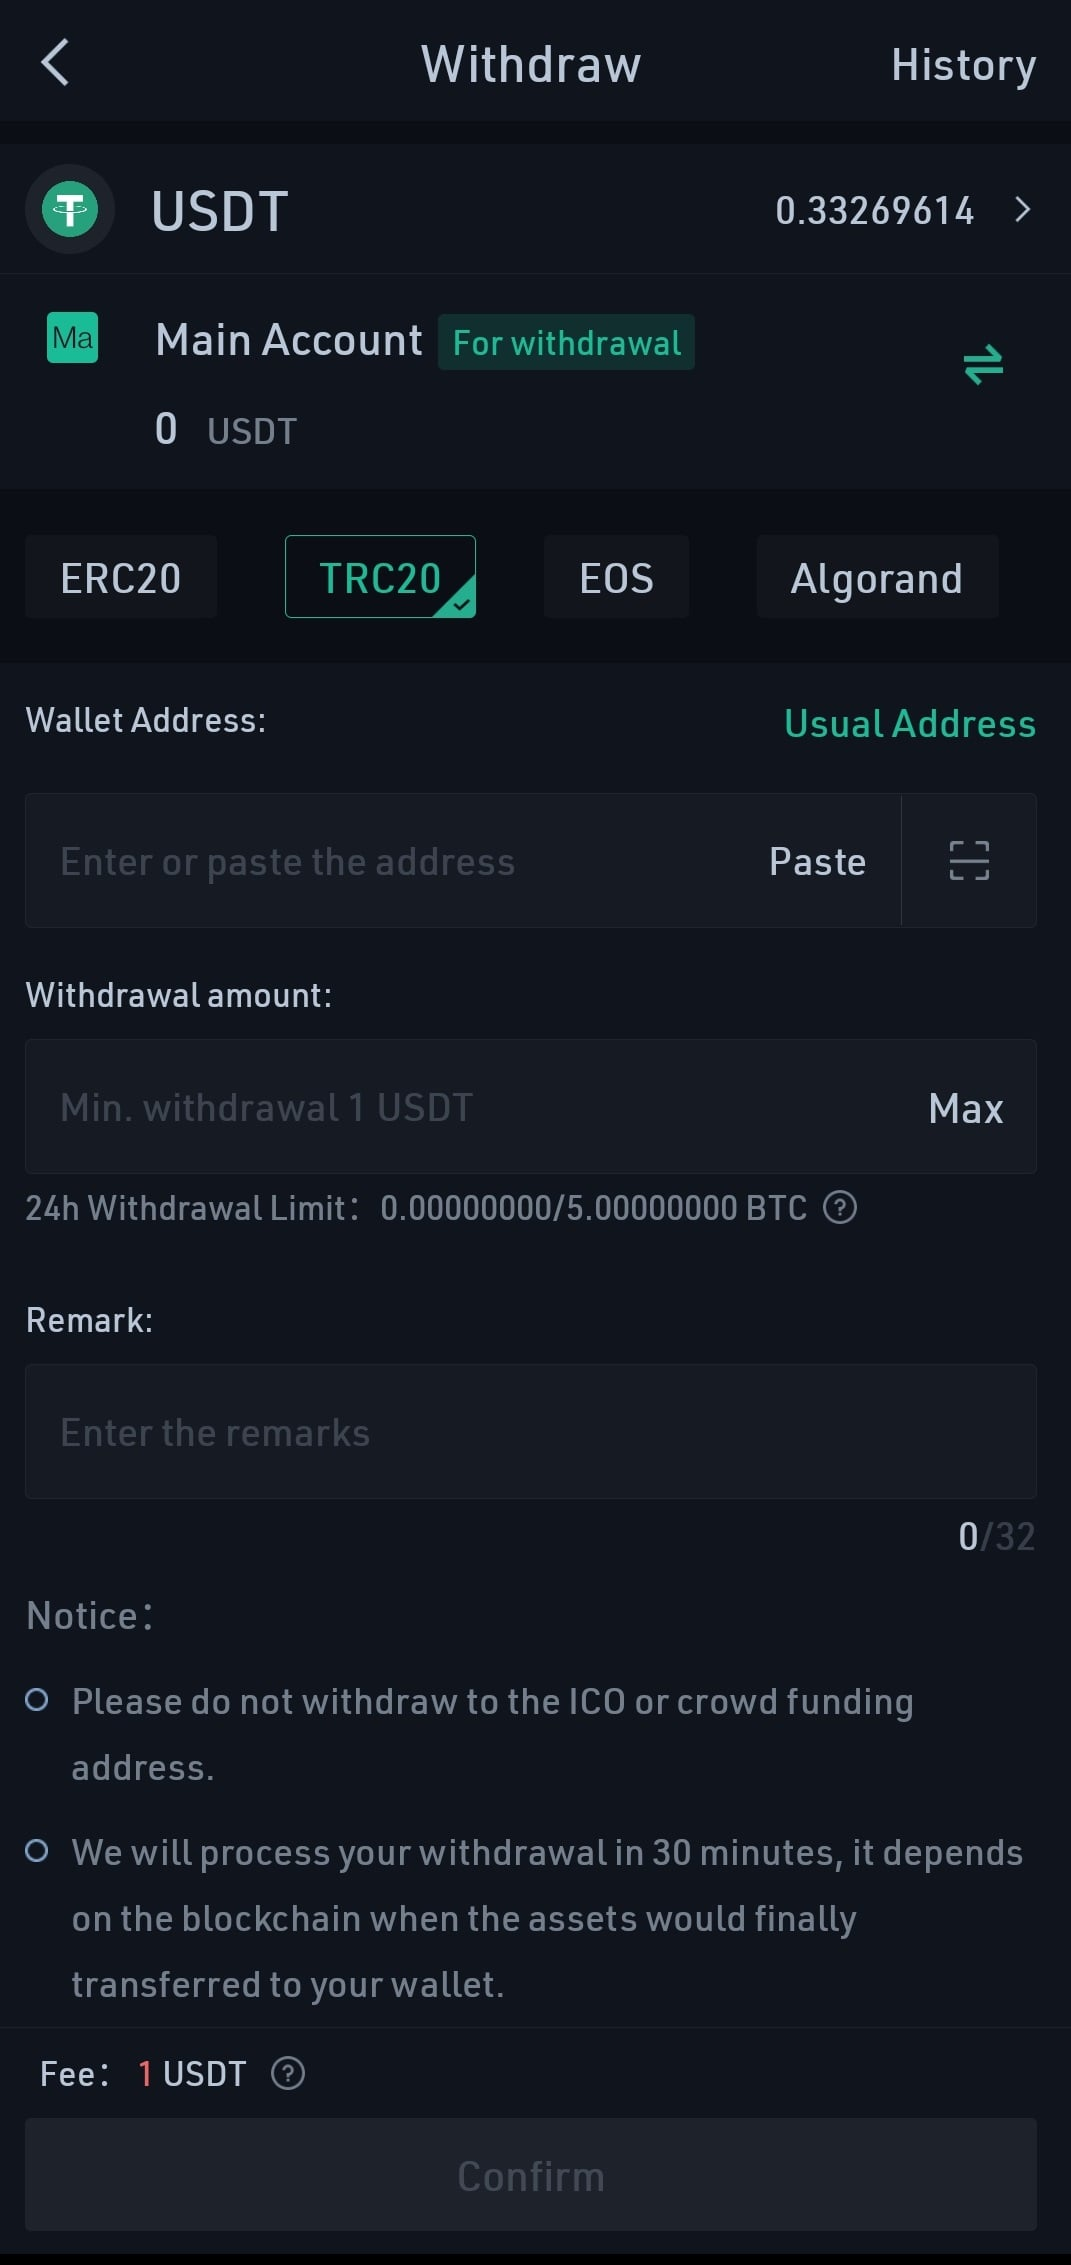 How to Withdraw Money From KuCoin